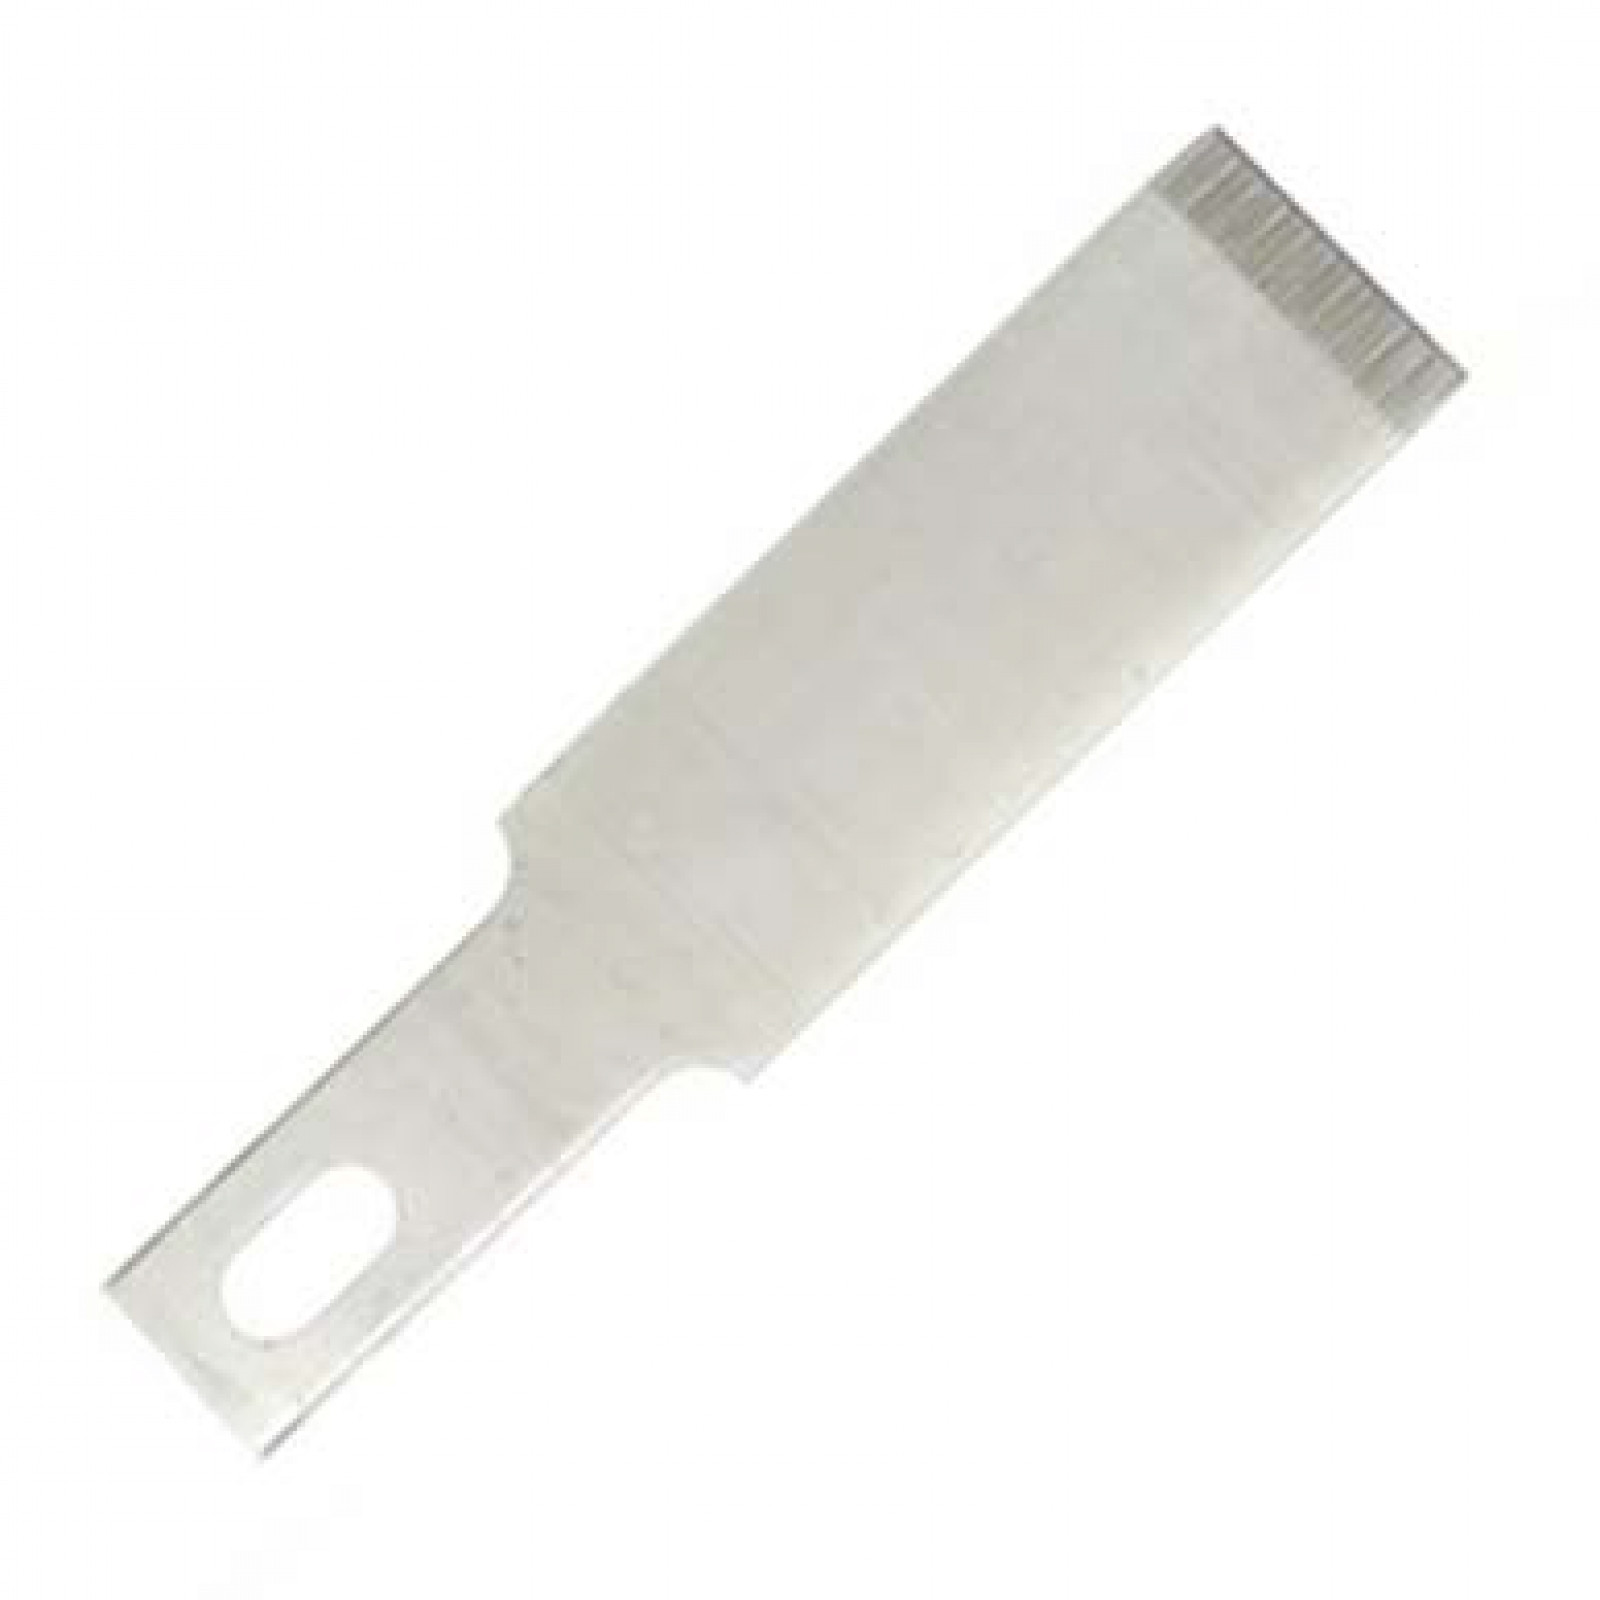 NO.18 LARGE CHISEL EDGE BLADE 5/8  (PKG 5)